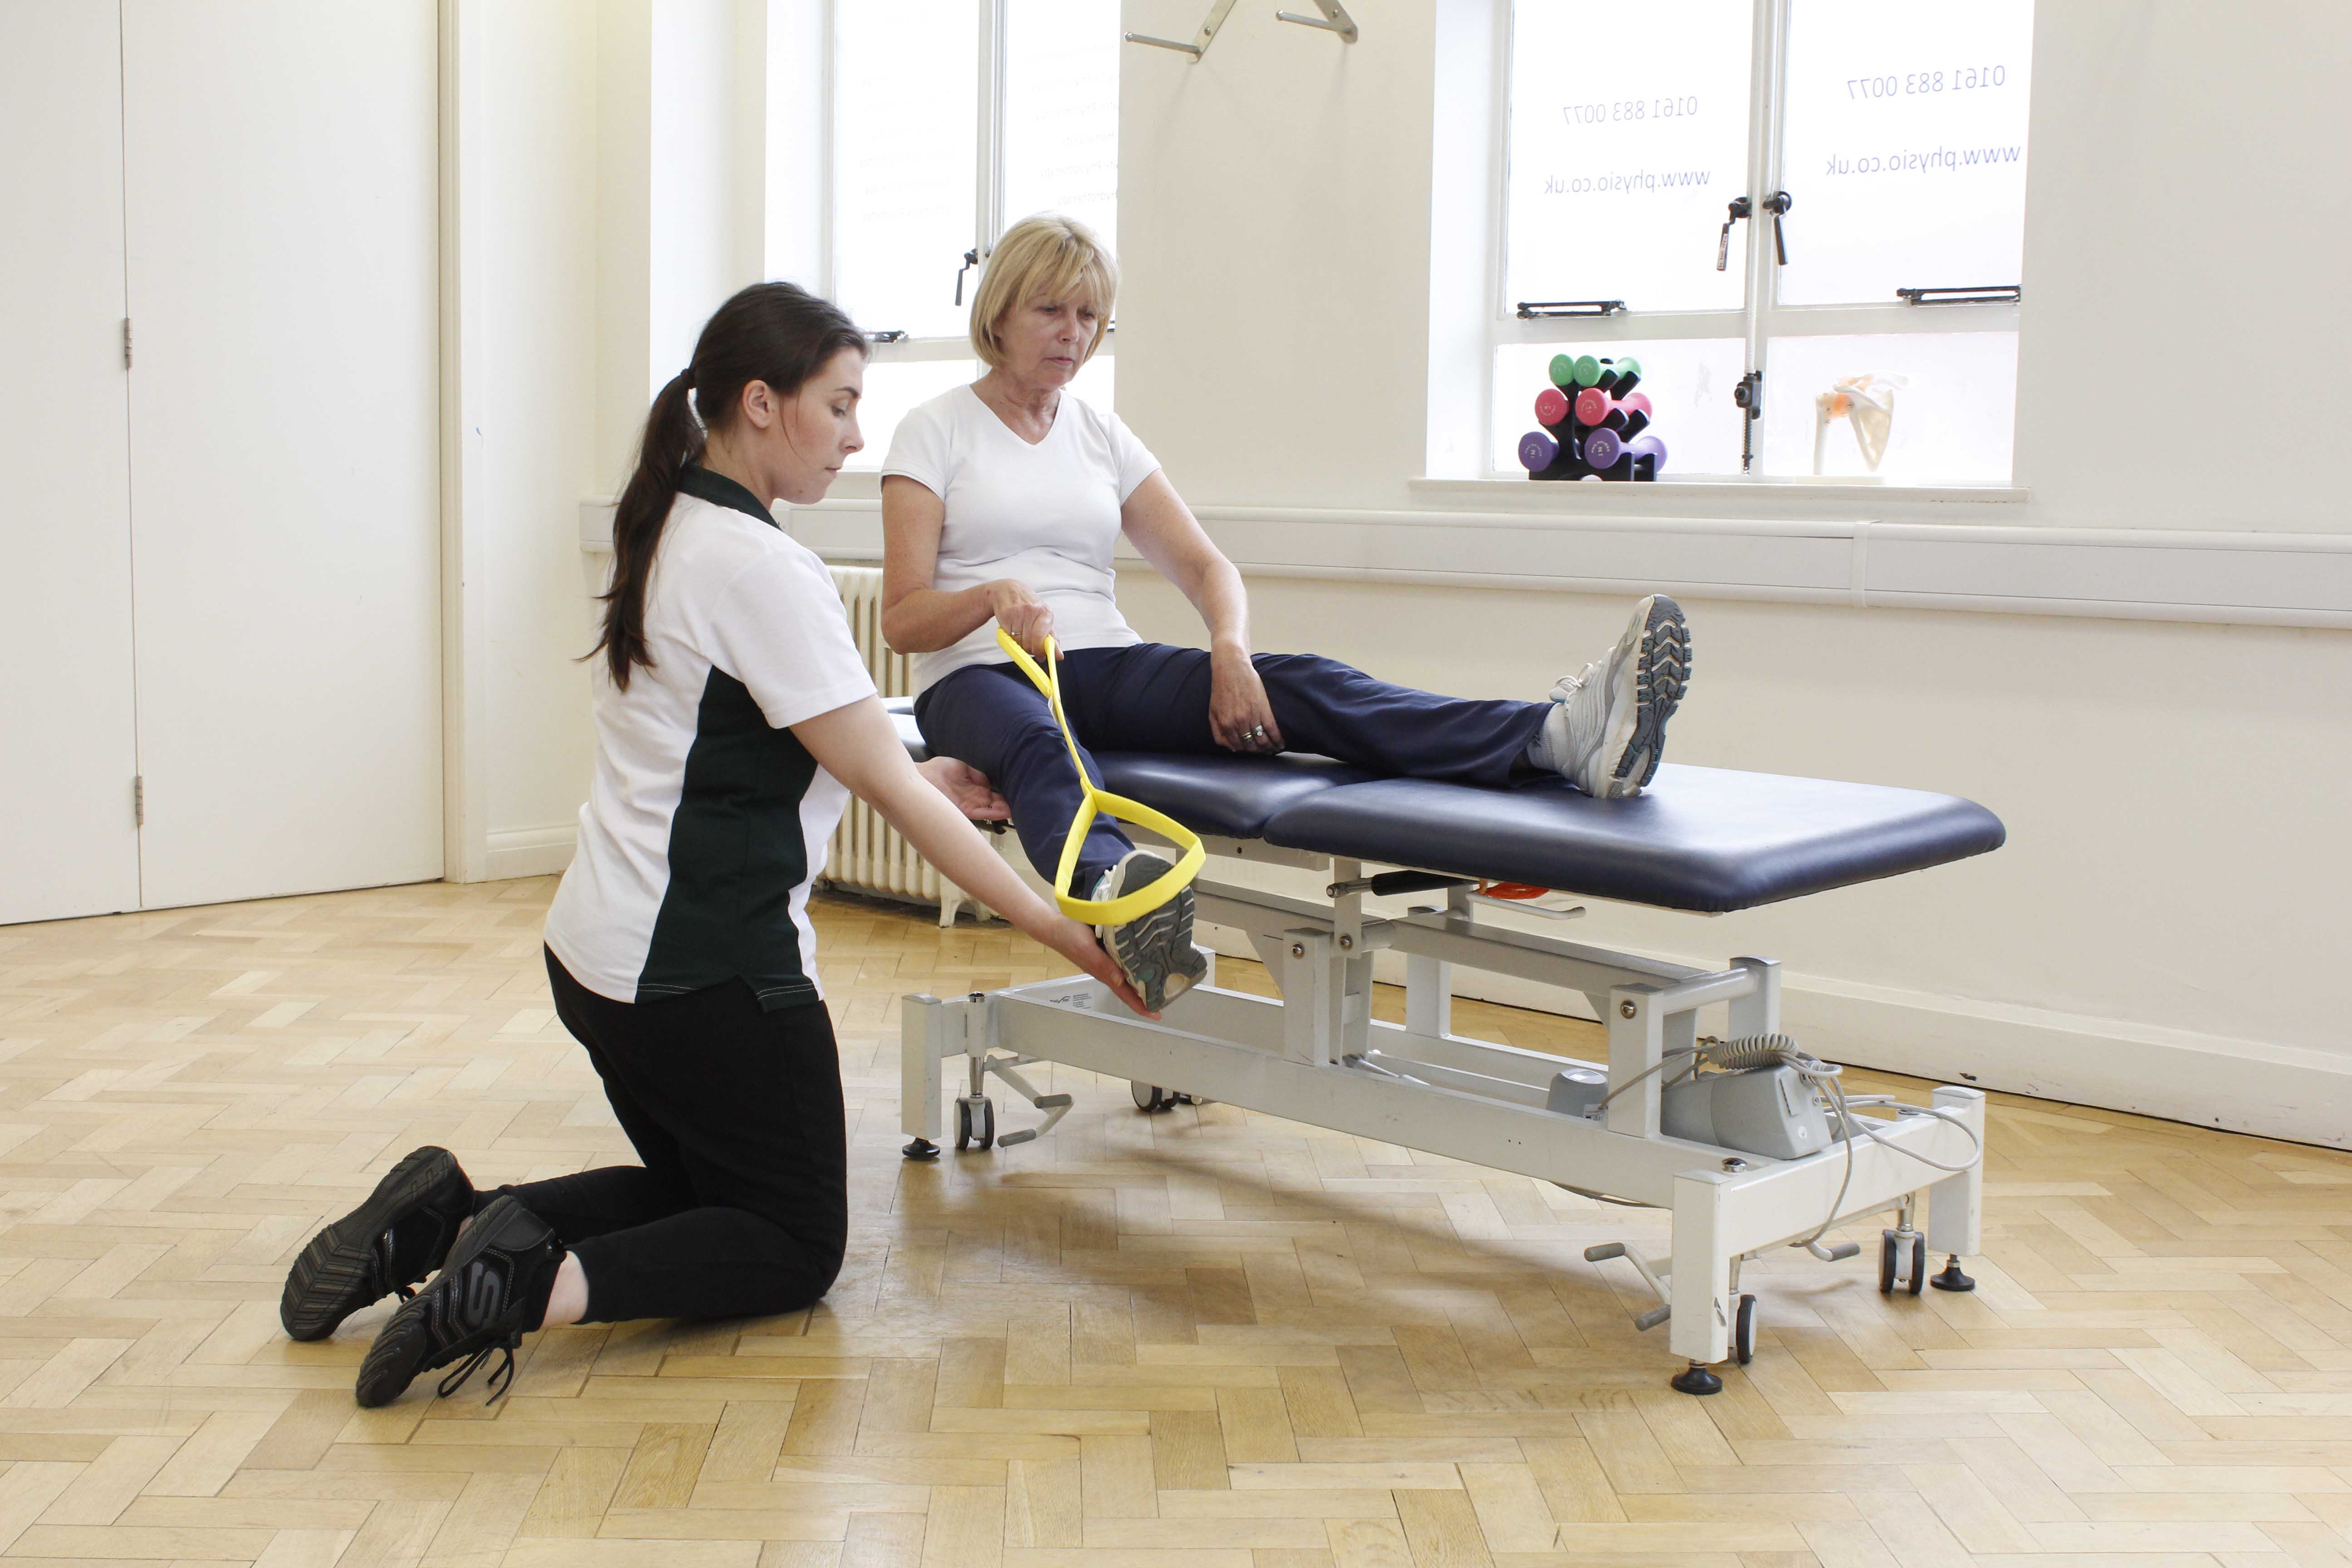 Occupational therapist assisting client with exercises to transfer in and out of bed